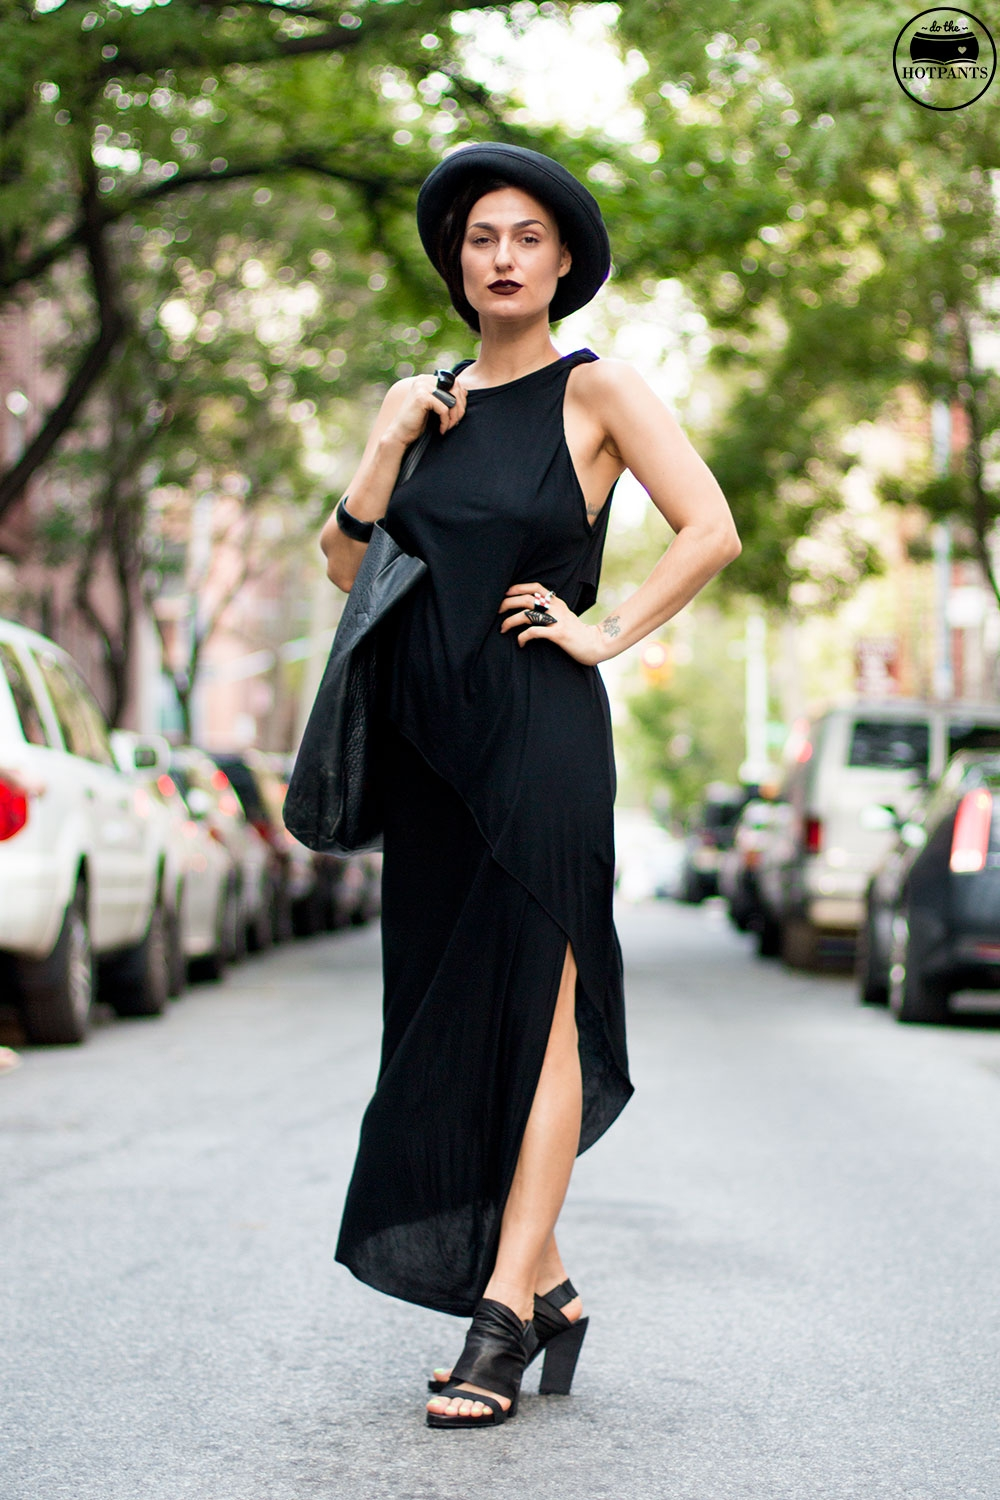 Do The Hotpants Dana Suchow Goth Streetstyle Fashion Black Maxi Dress Gothic Style MAC Dark Lipstick Fall Look IMG_2102